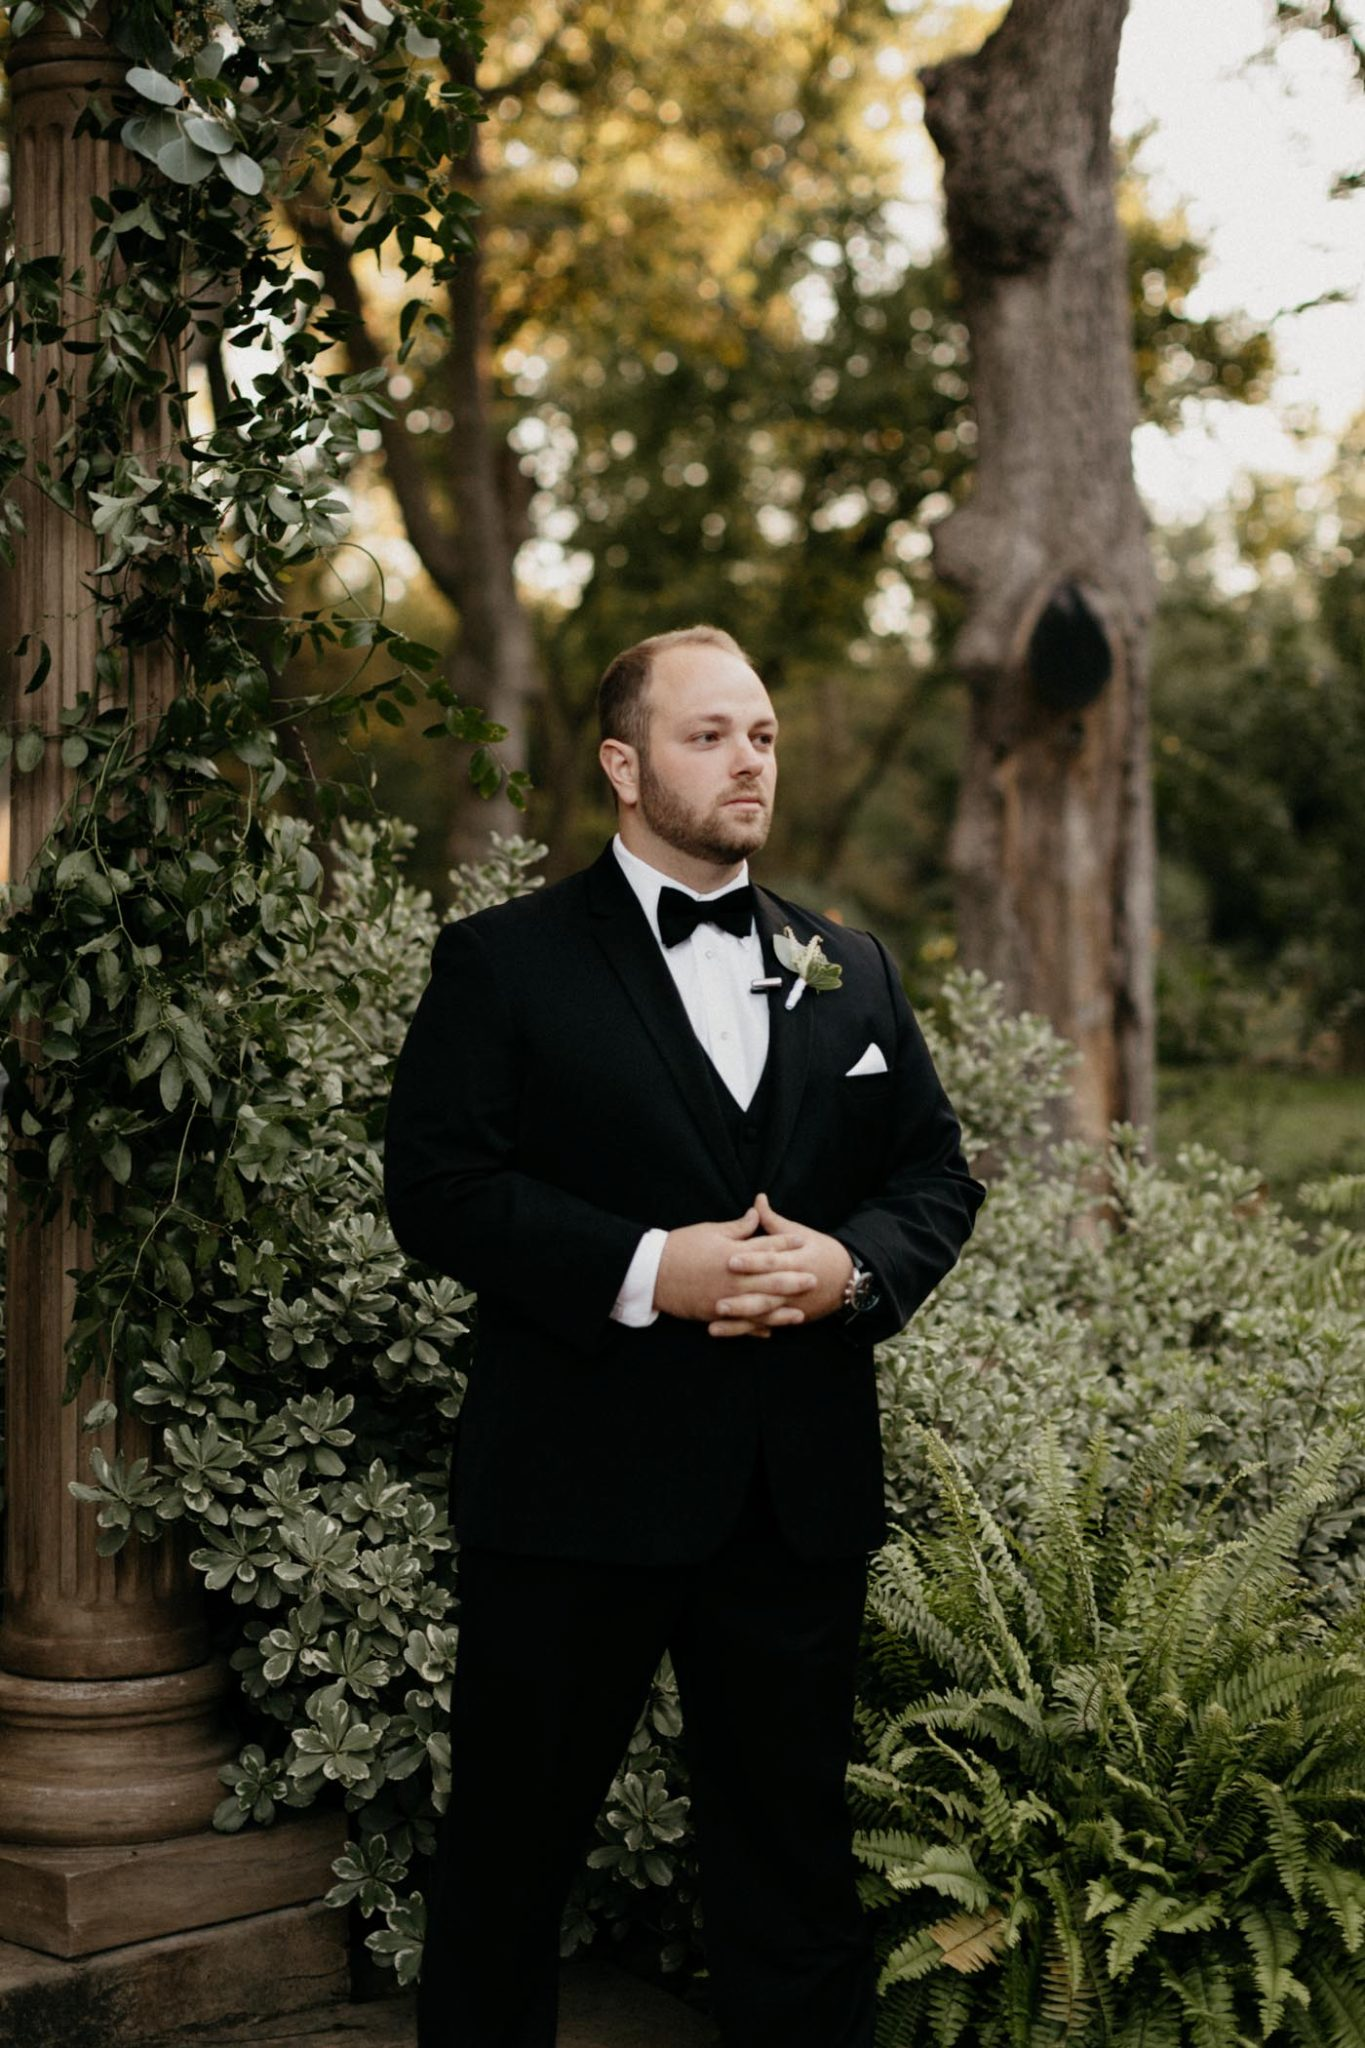 groom getting emotional as he see's his bride walking down the aisle at their elegant wedding